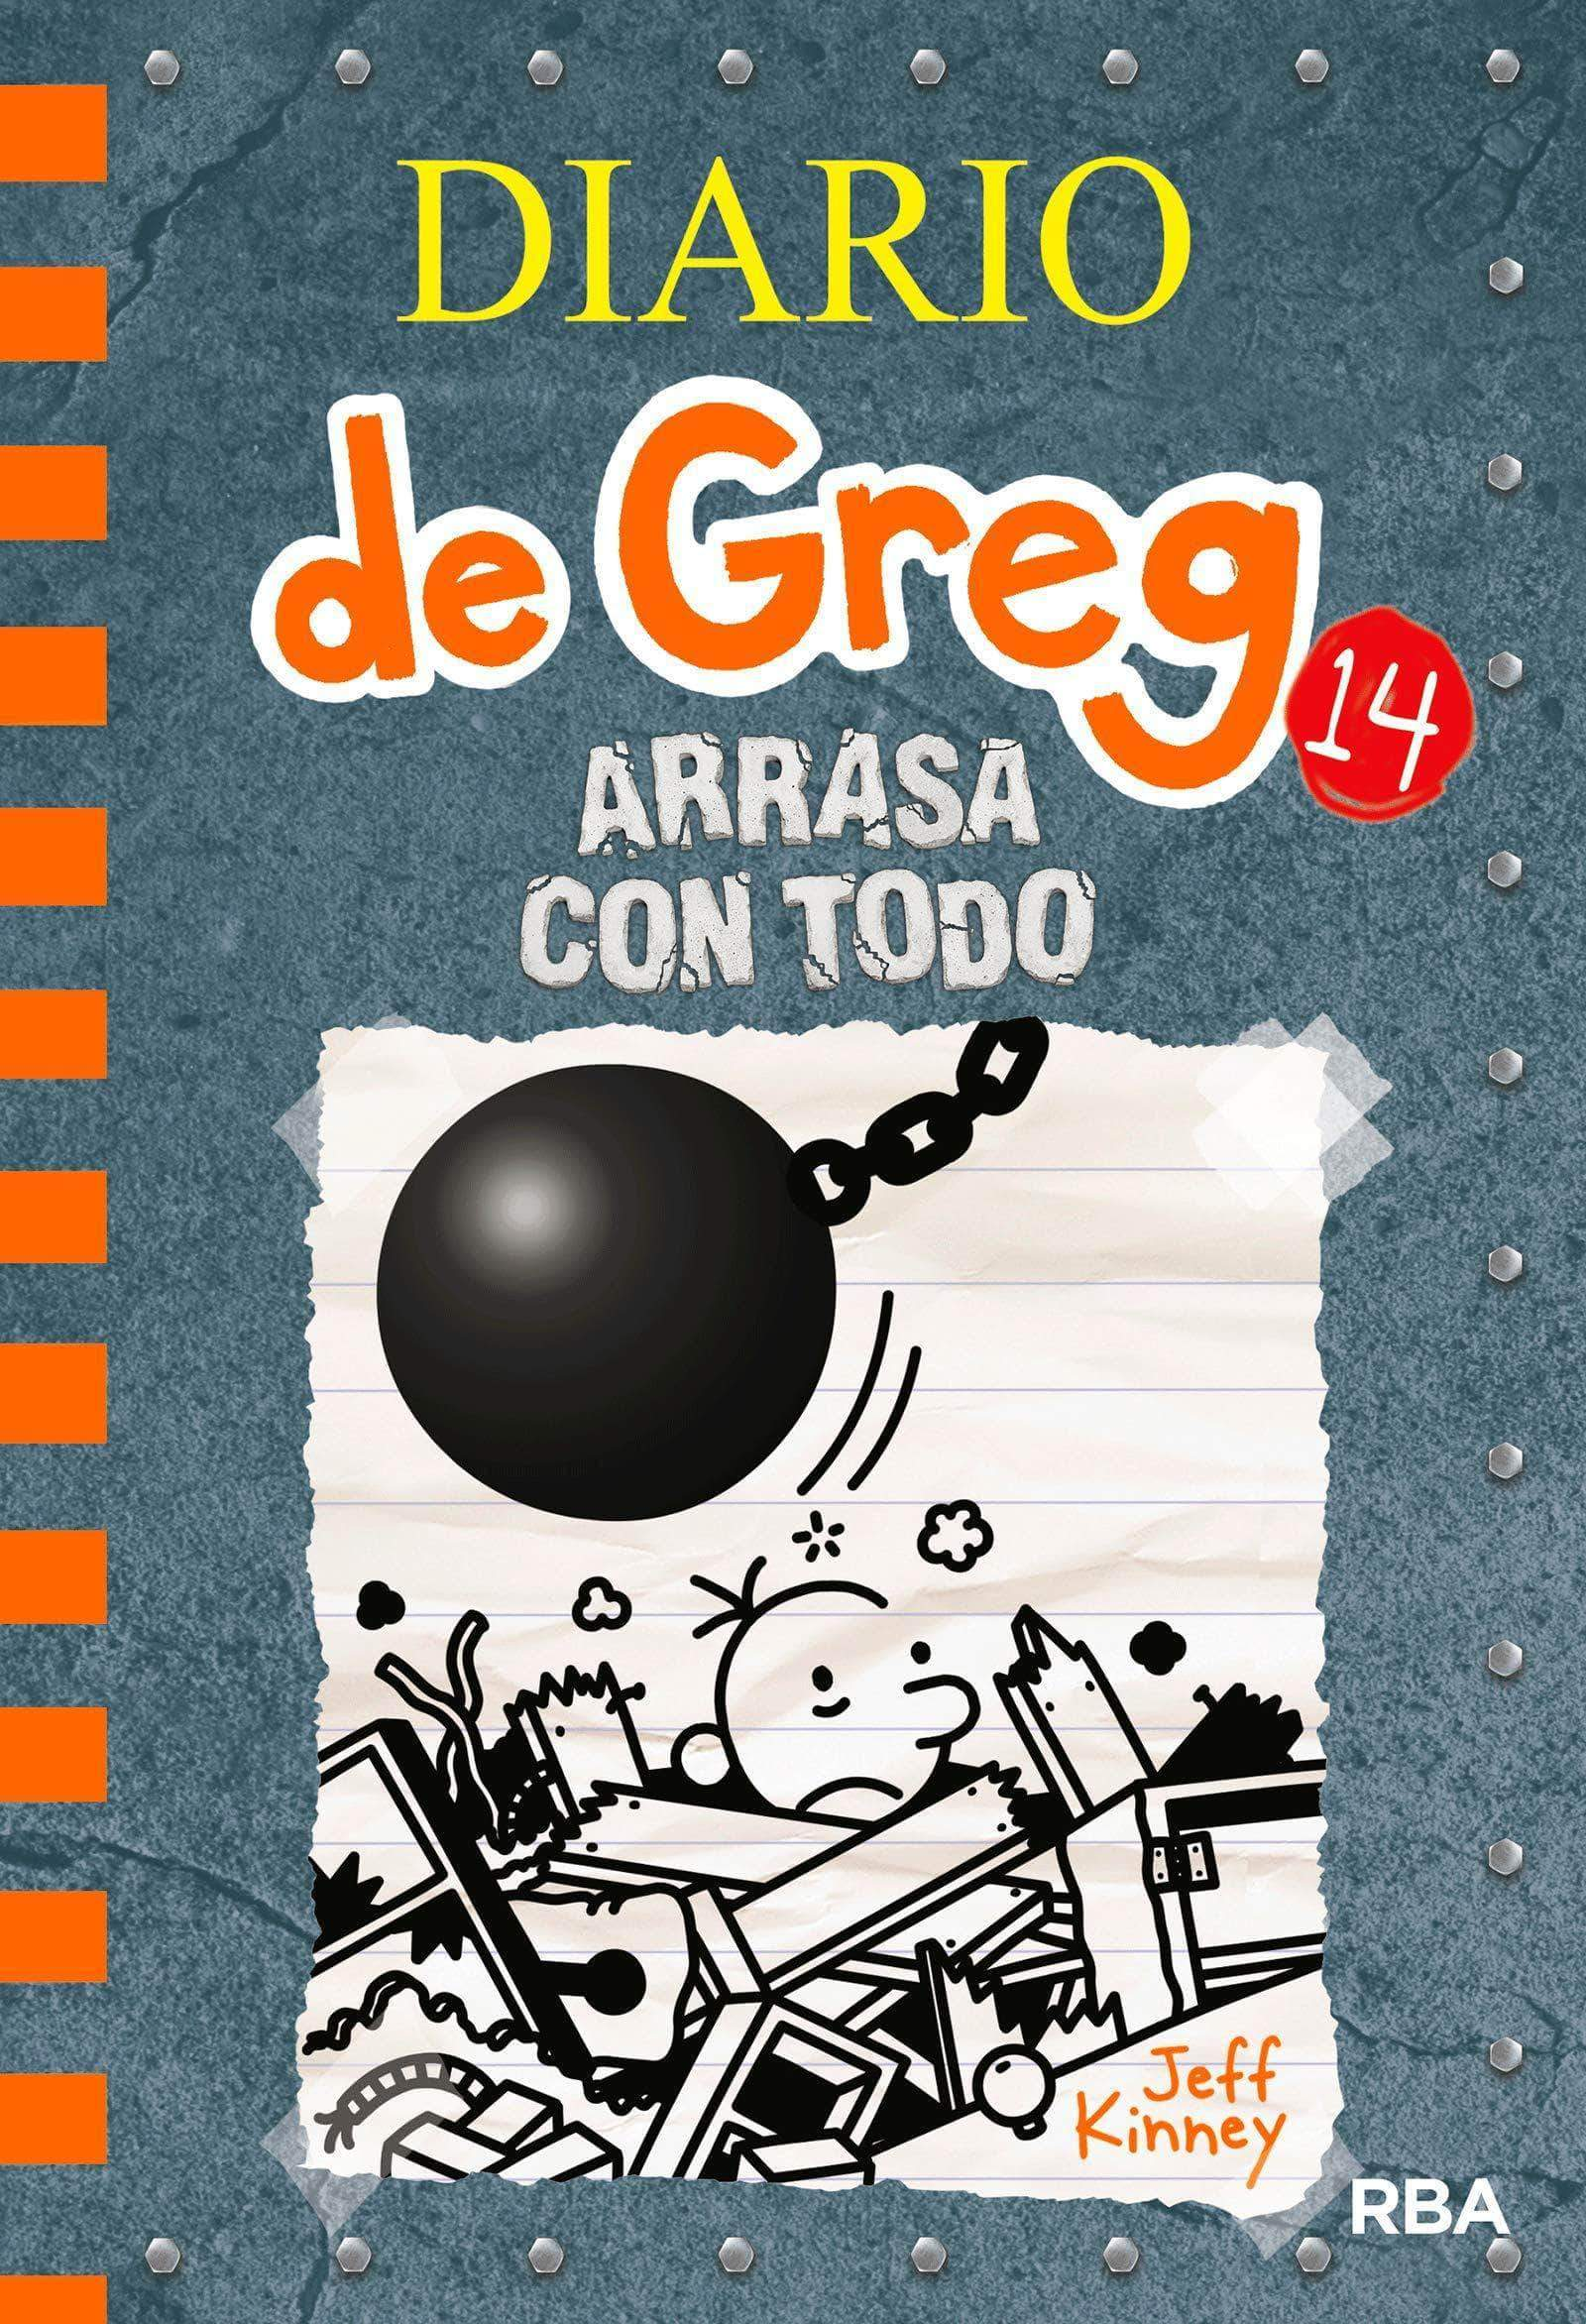 Amazon Diario de Greg 14. Arrasa con todo